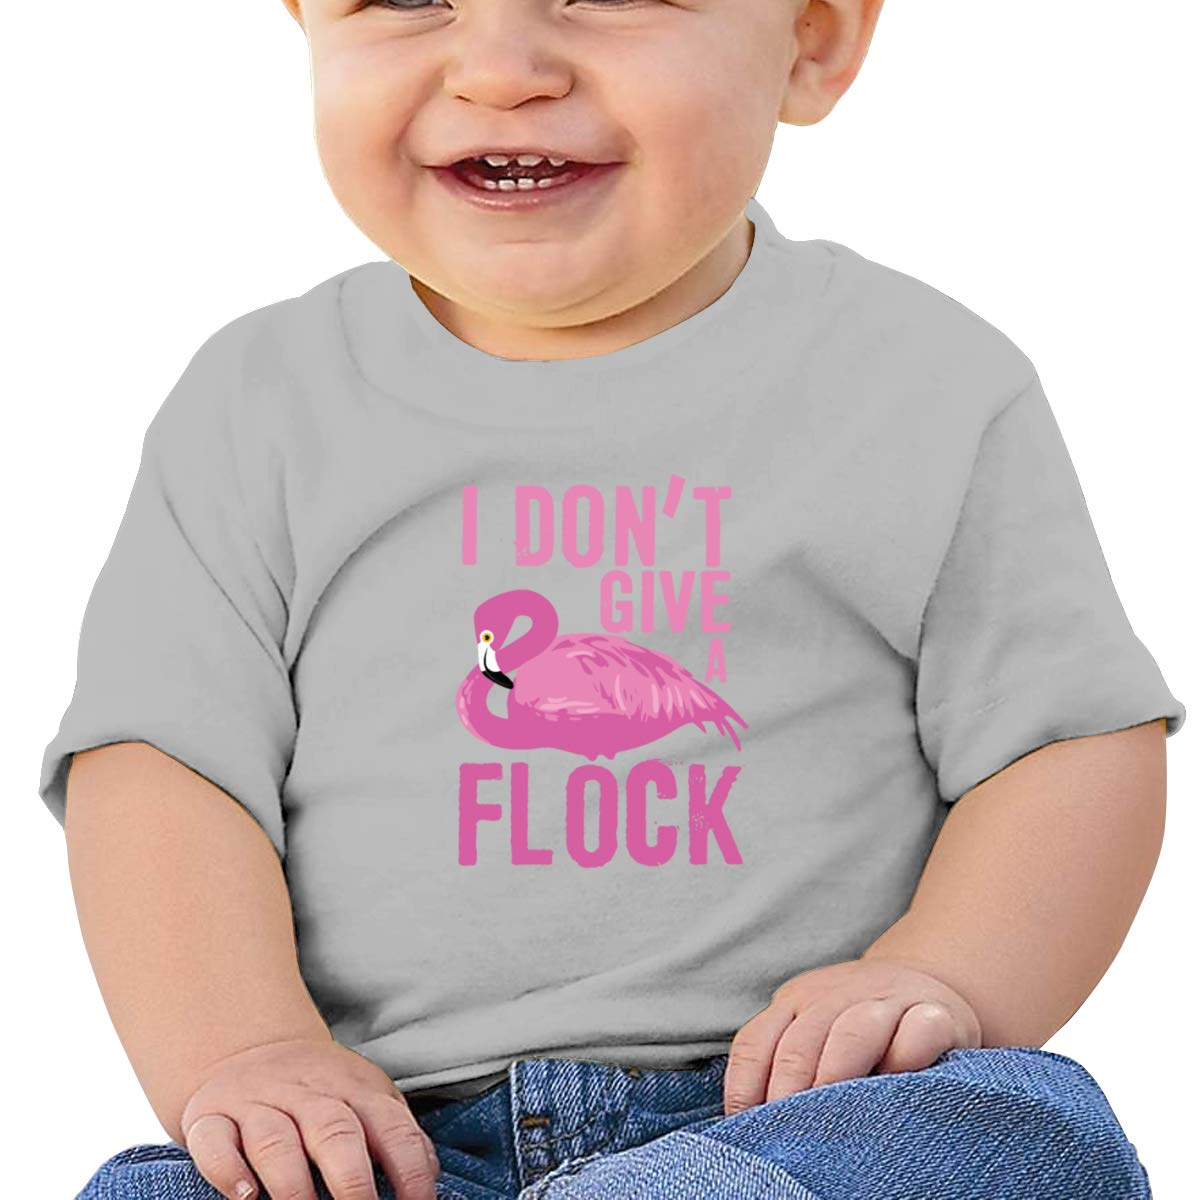 I Dont Give A Flock Toddler Short Sleeve Tee Boys Birthday Gift